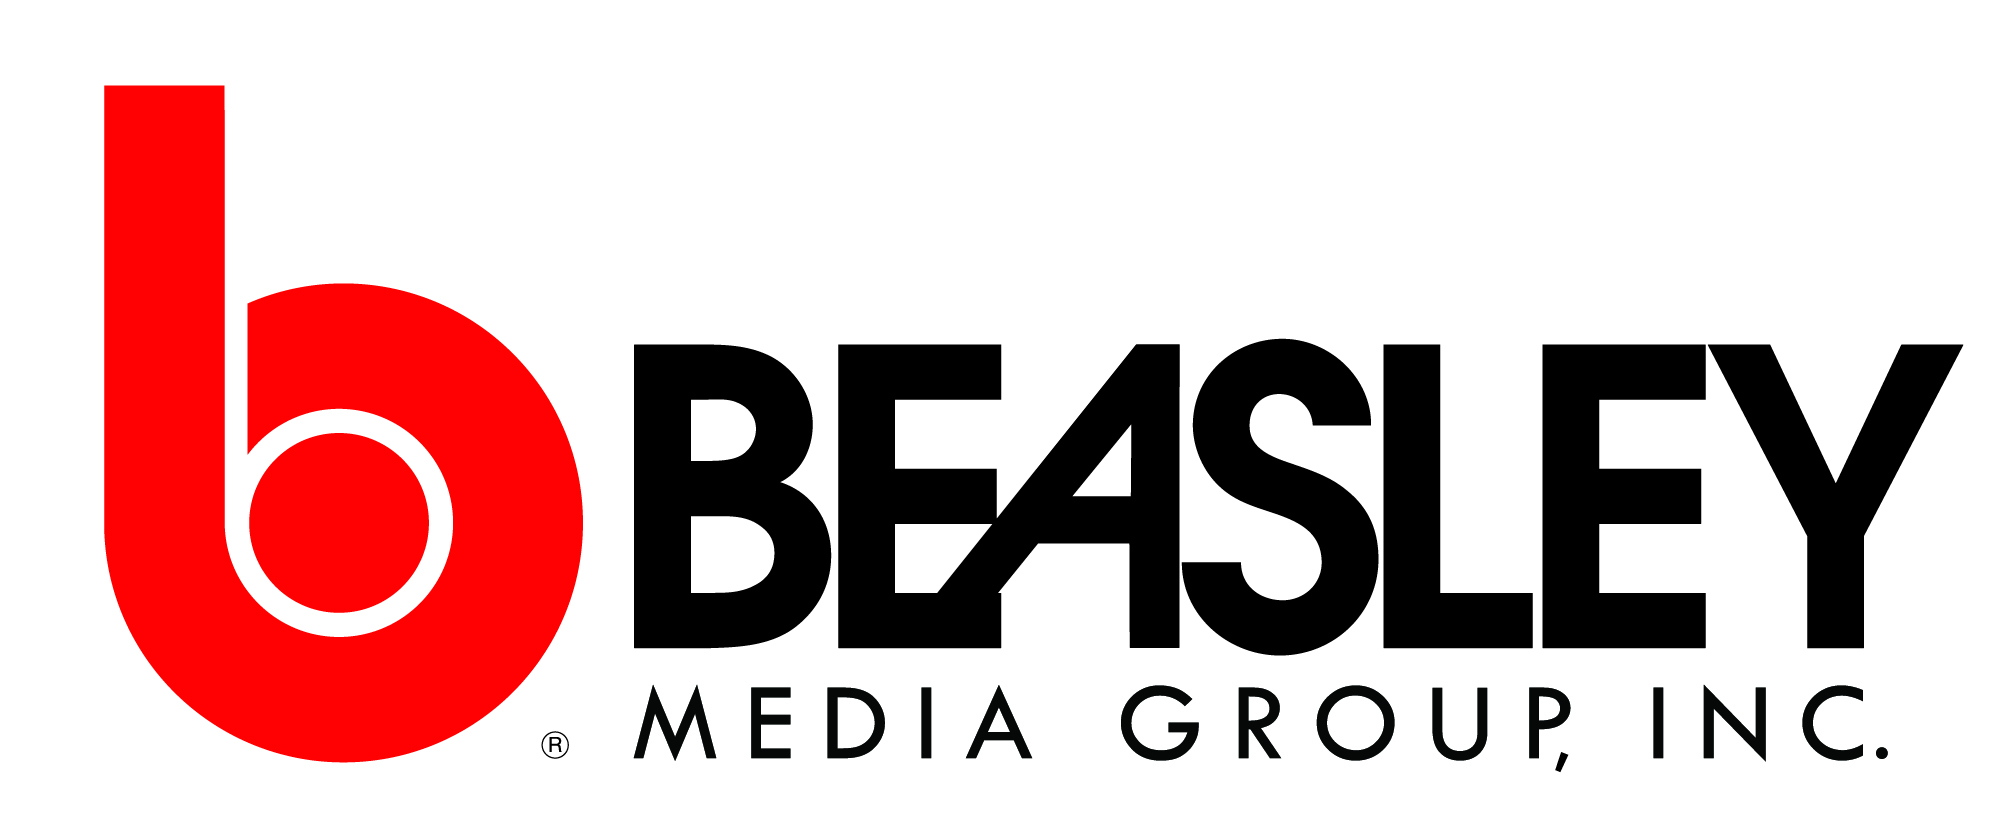 Beasly Media Group